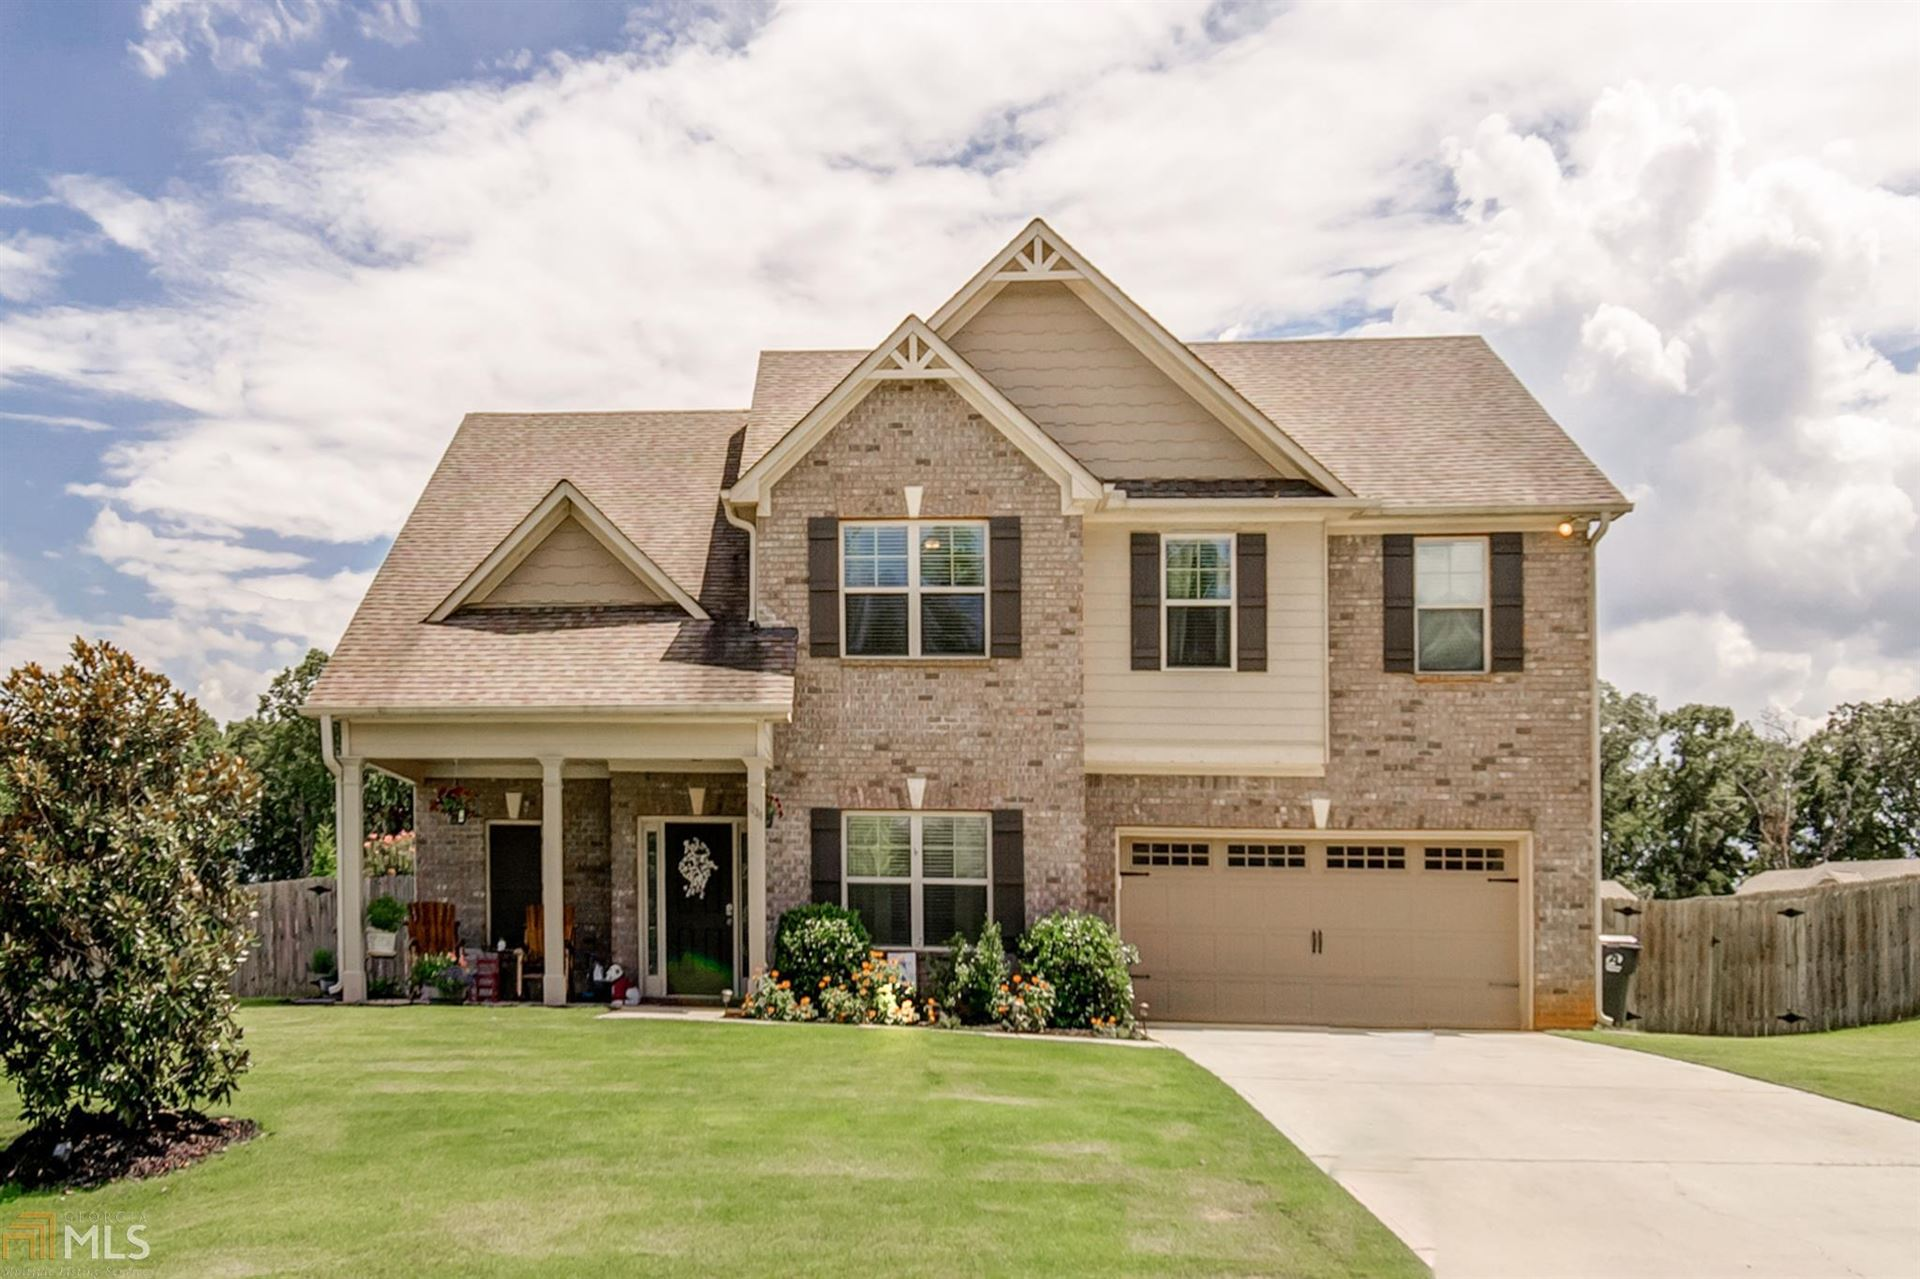 1130 Abe Lincoln Way, Jefferson, GA 30549 - MLS#: 8830880